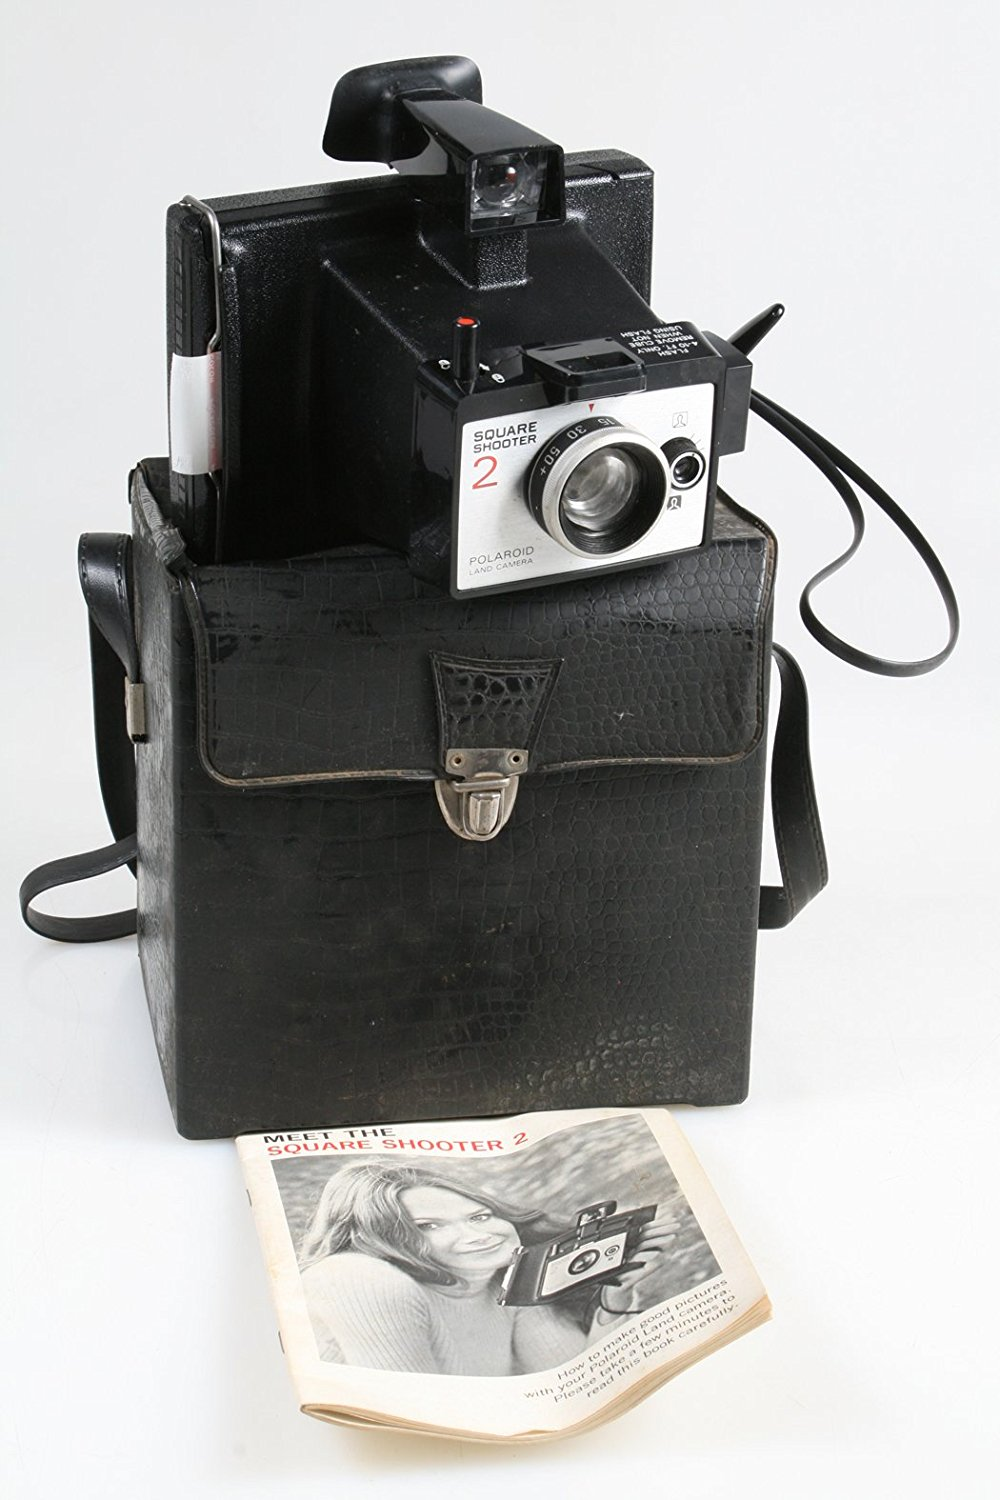 VINTAGE 1970S POLAROID SQUARE SHOOTER 2 WITH ALLIGATOR STYLE CASE